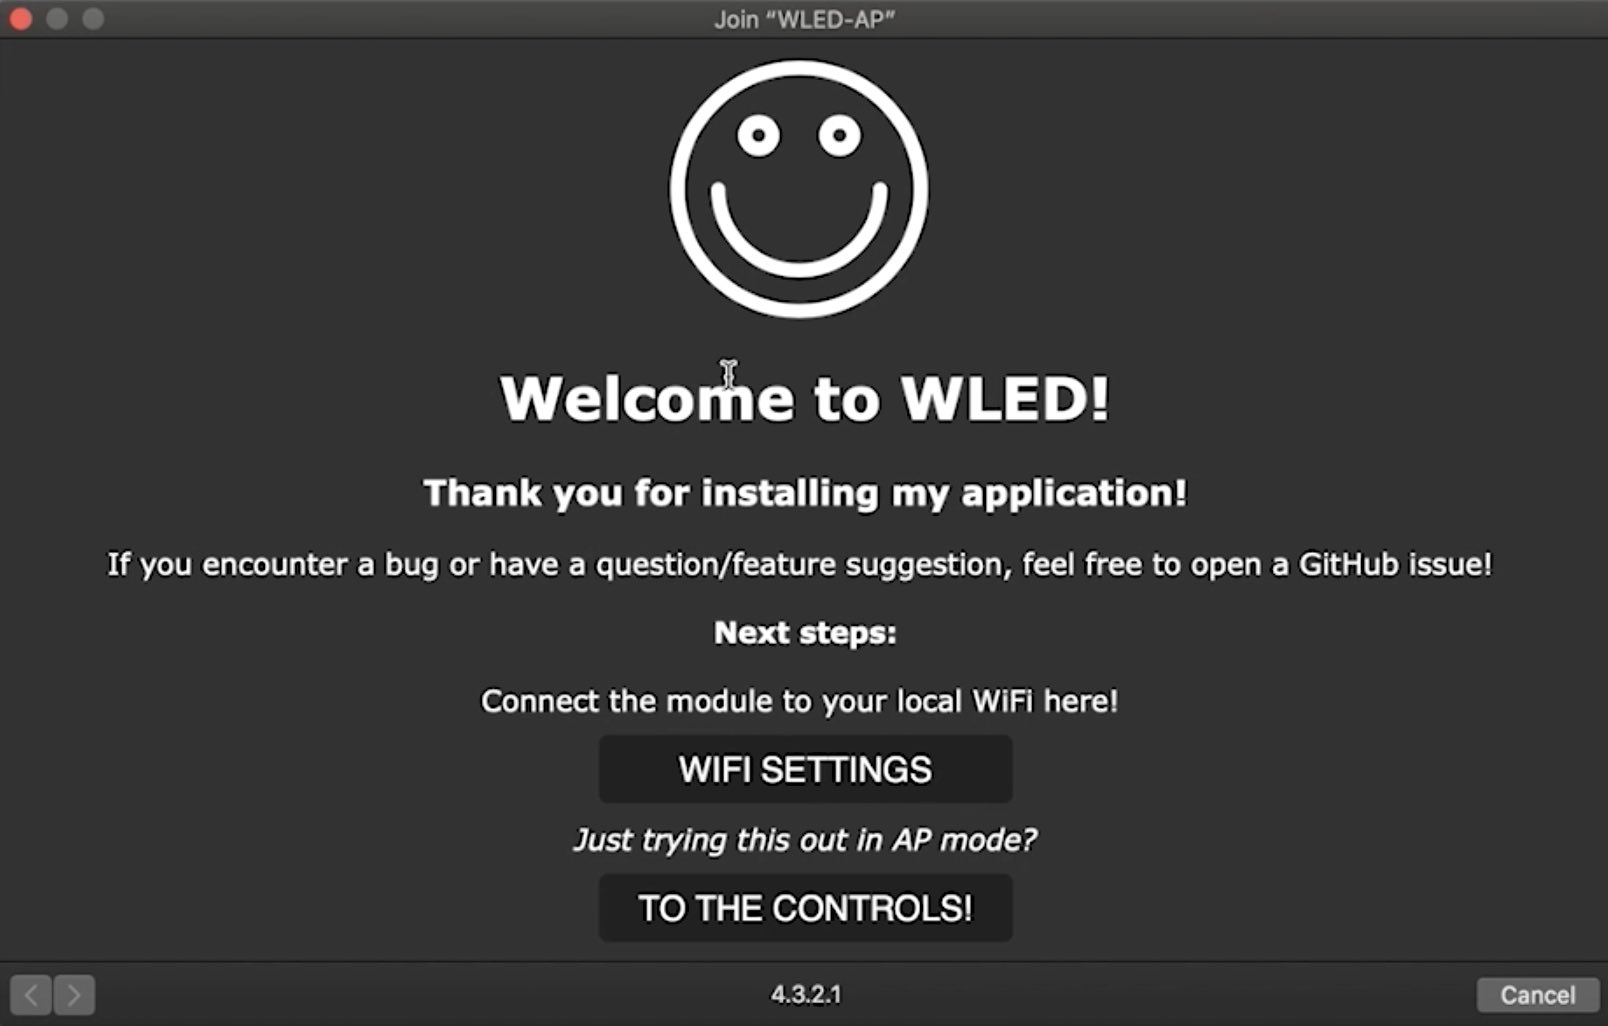 The screen that you will see when you first join WLED-AP